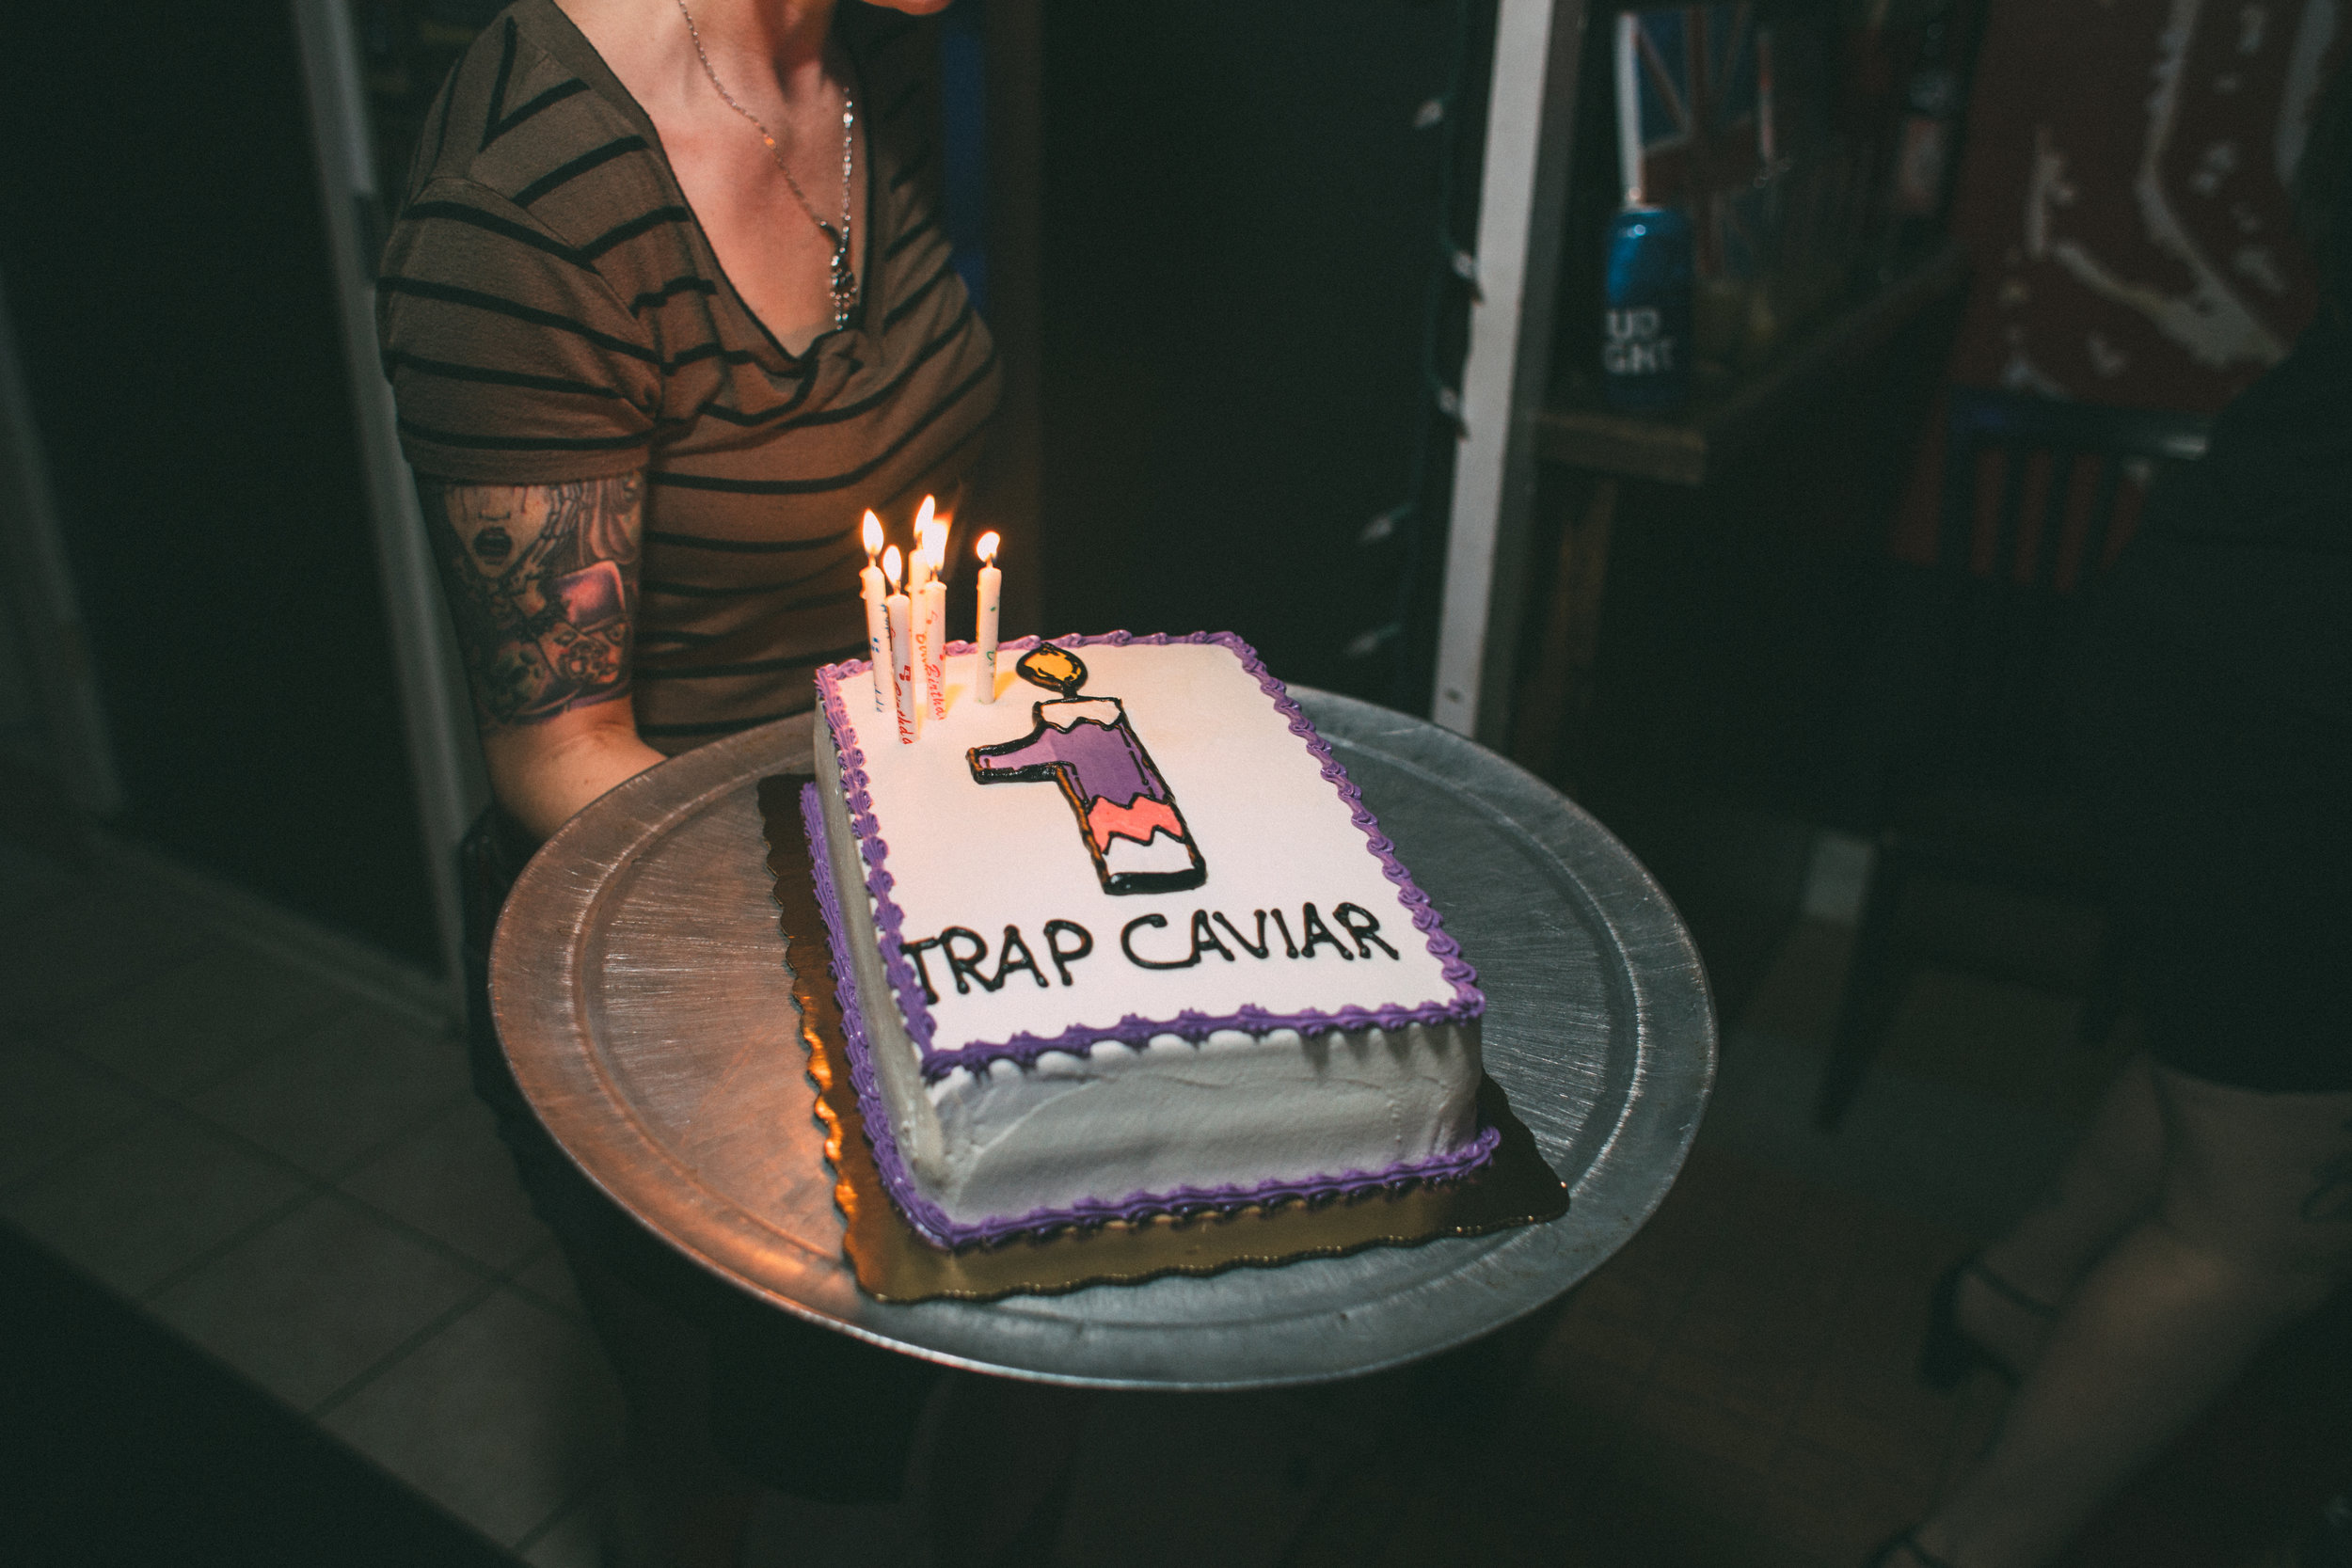 TRAP CAVIAR 1 YEAR ANNIVERSARY (62 of 135).jpg